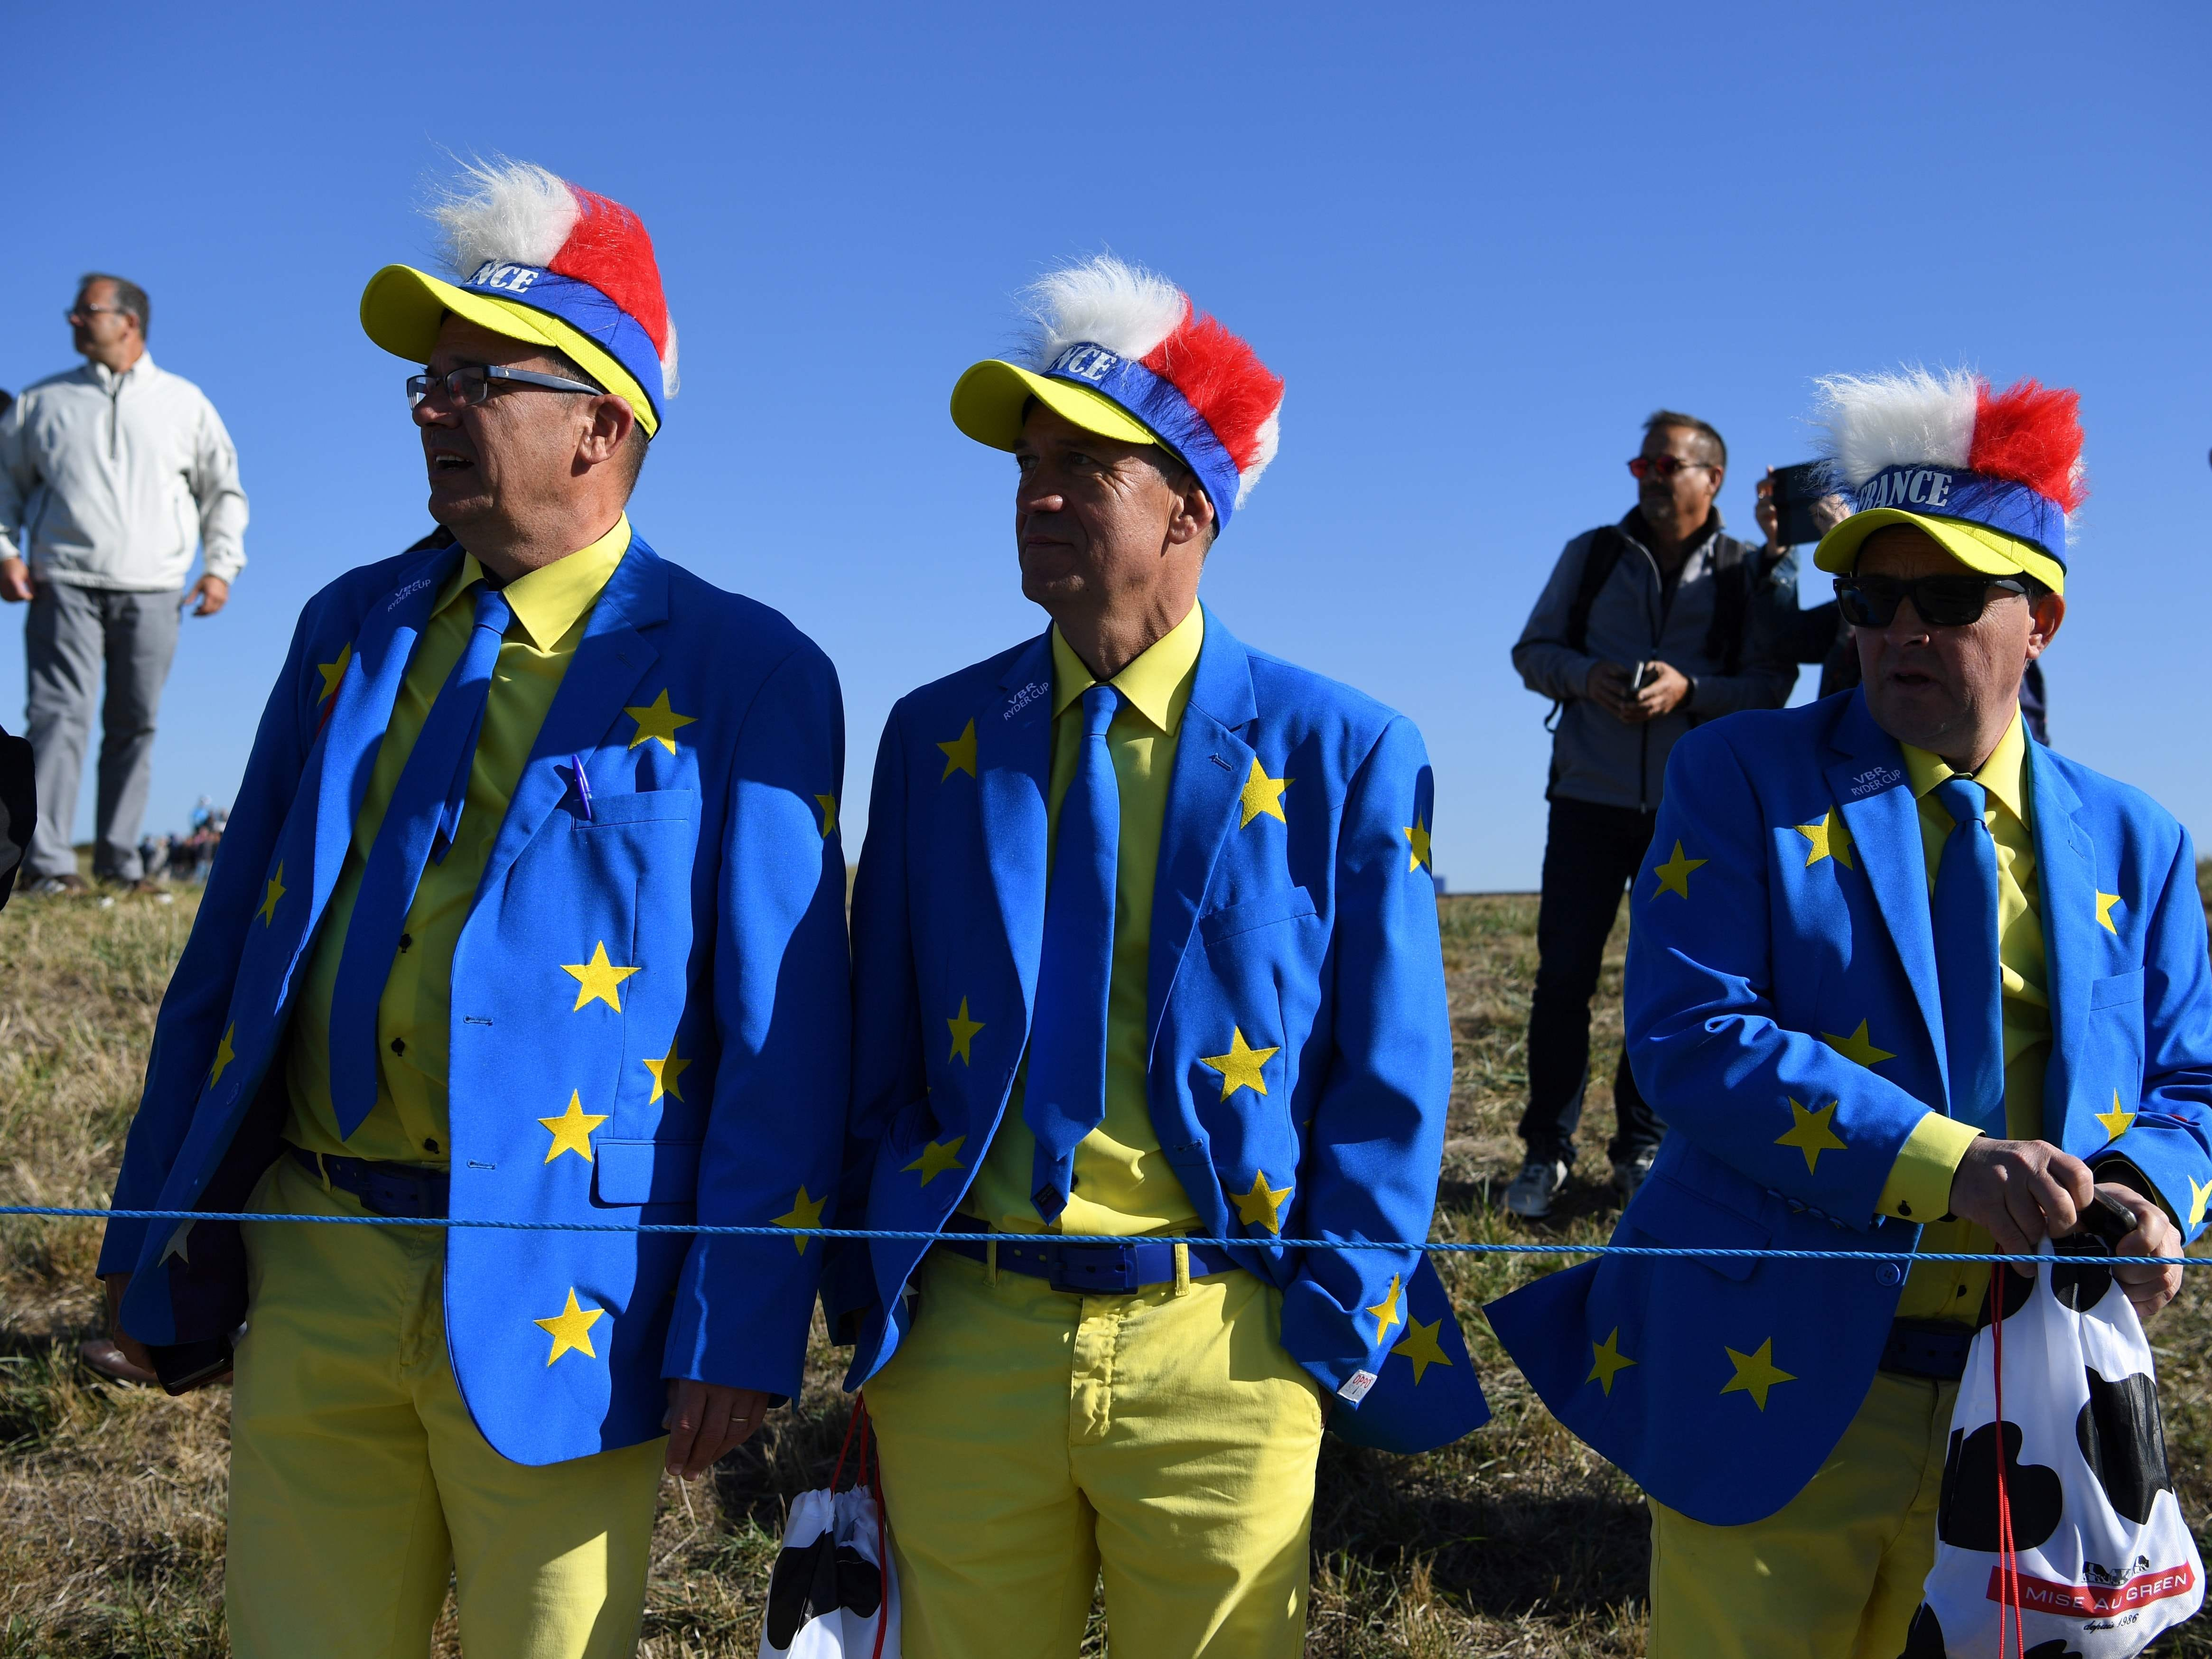 Spectators look on during a practice session ahead of the 42nd Ryder Cup.